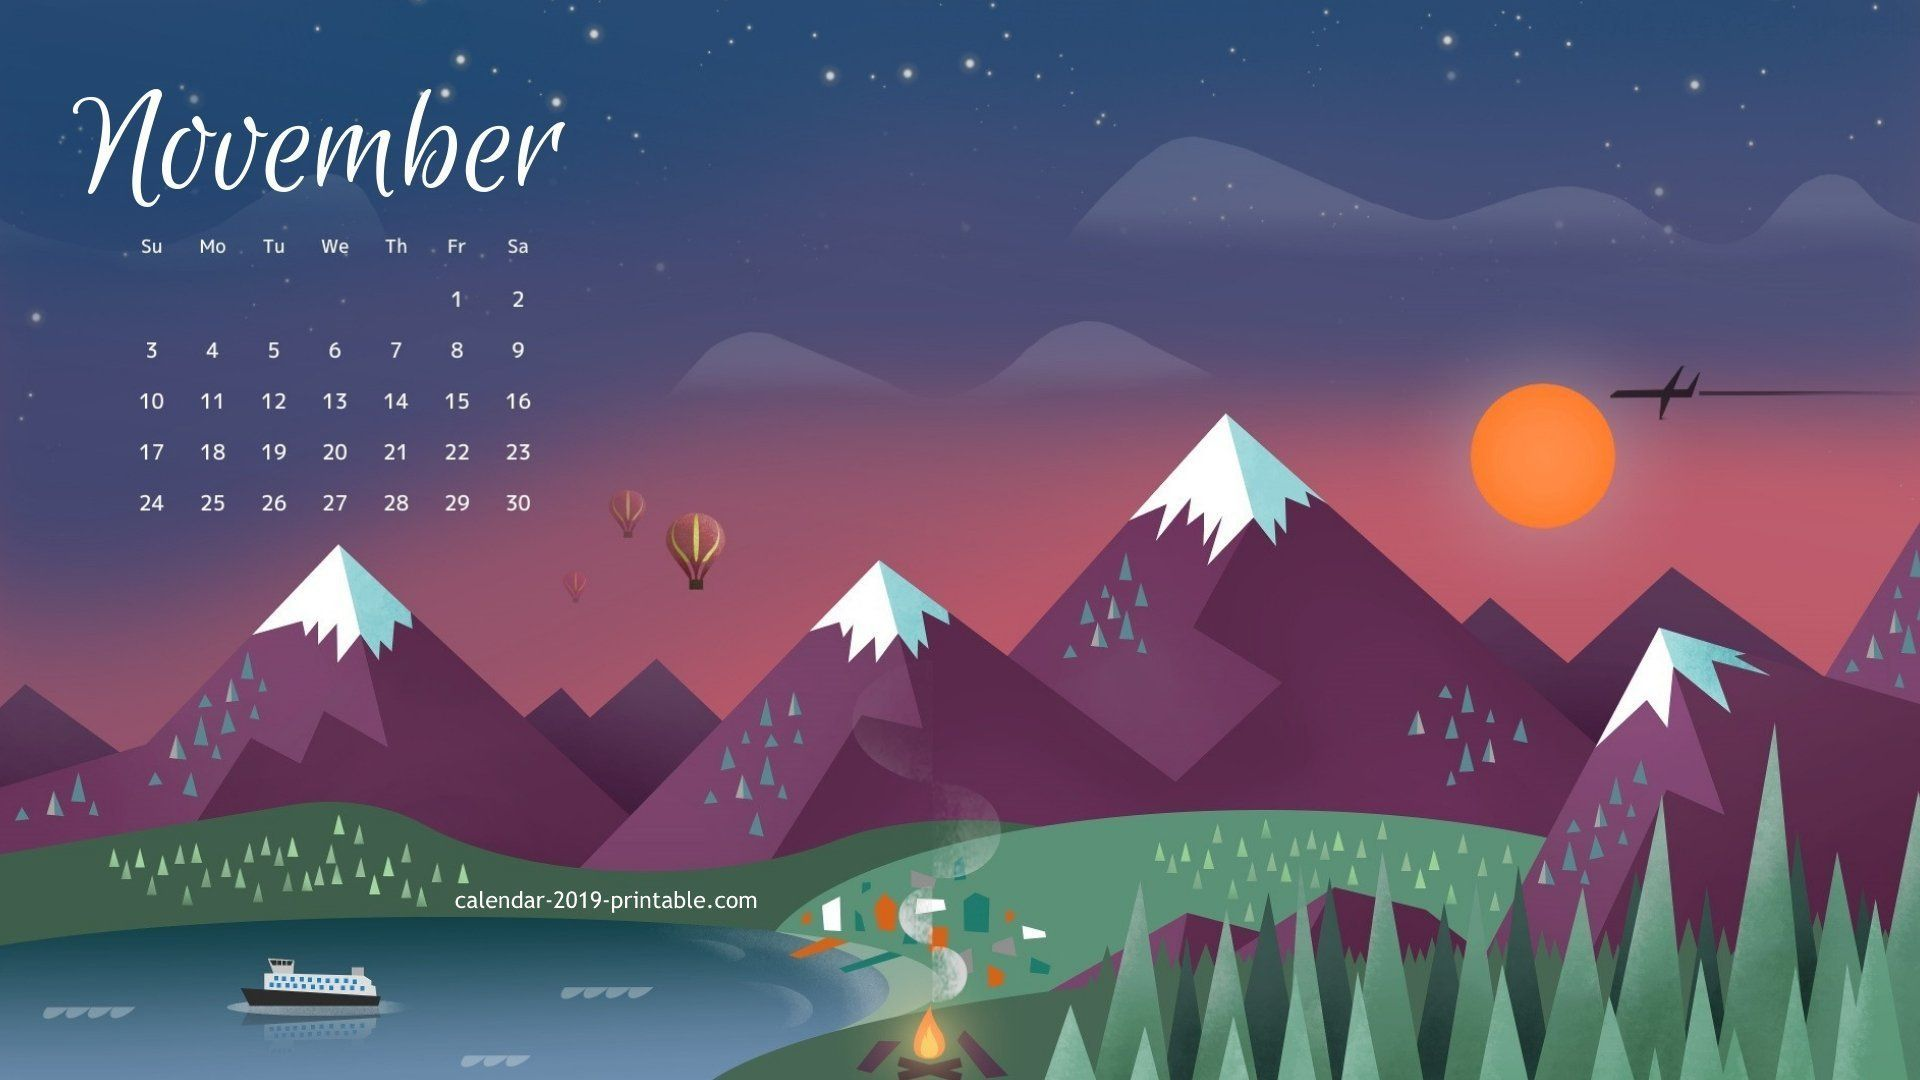 November 2019 Calendar Wallpapers   Top November 2019 1920x1080